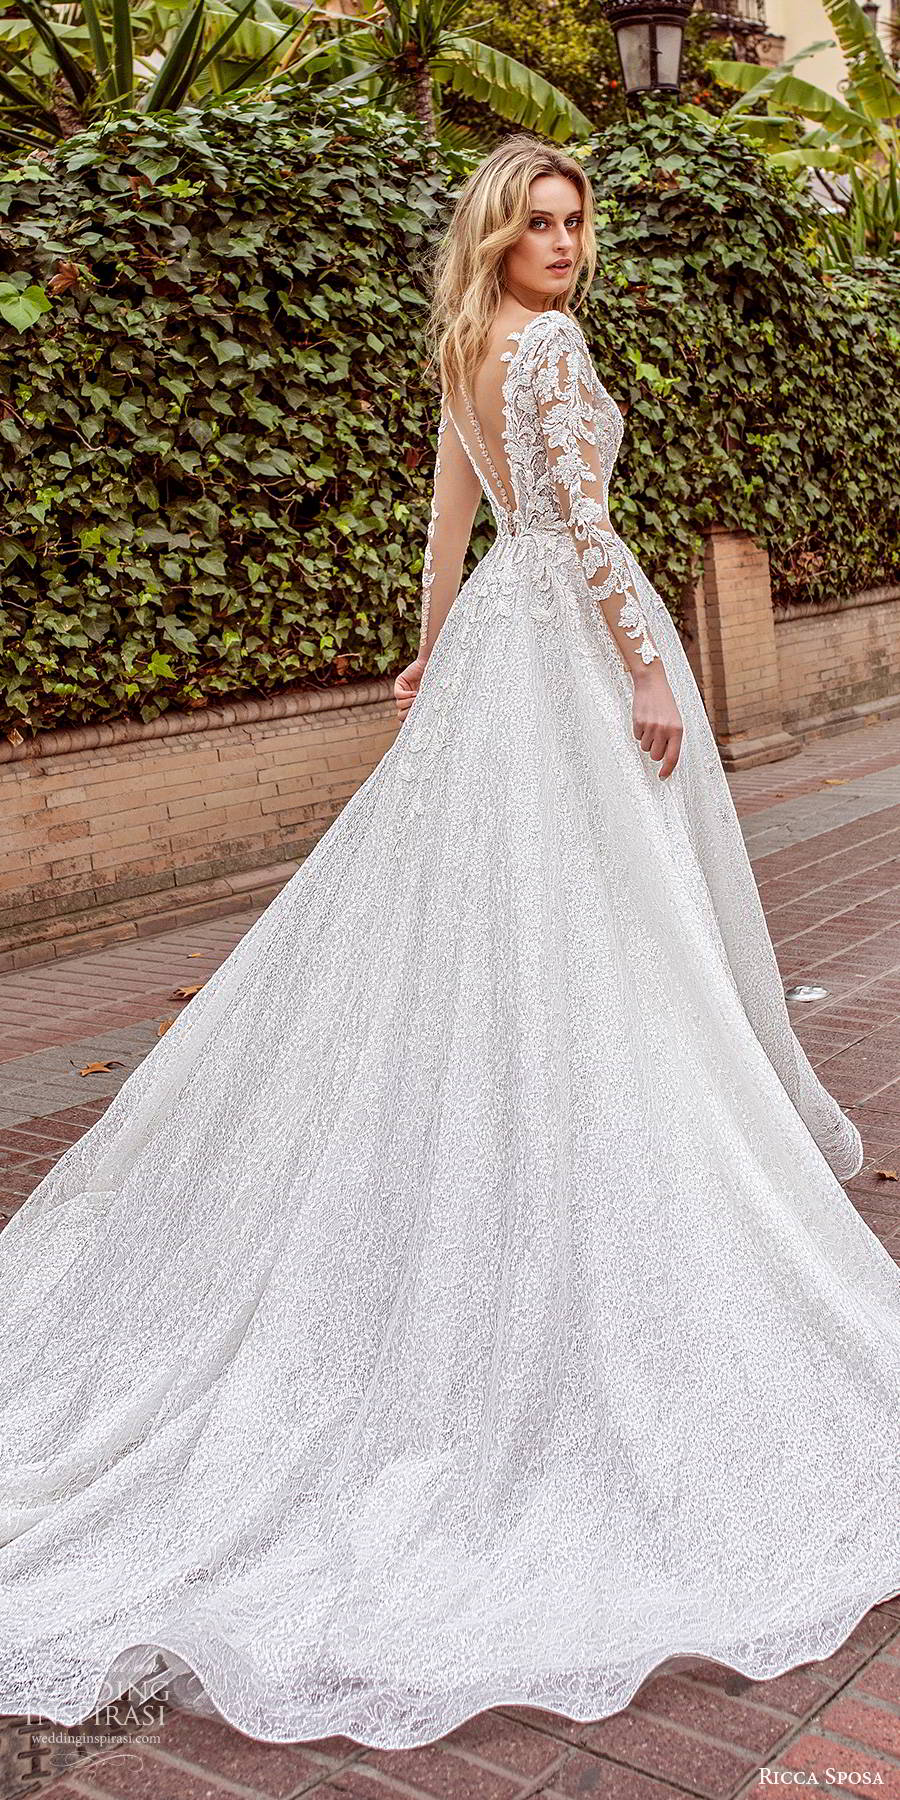 ricca sposa 2019 bridal illusion long sleeves plunging v neckline fully embellished elegant a line ball gown lace wedding dress v back chapel train (8) bv